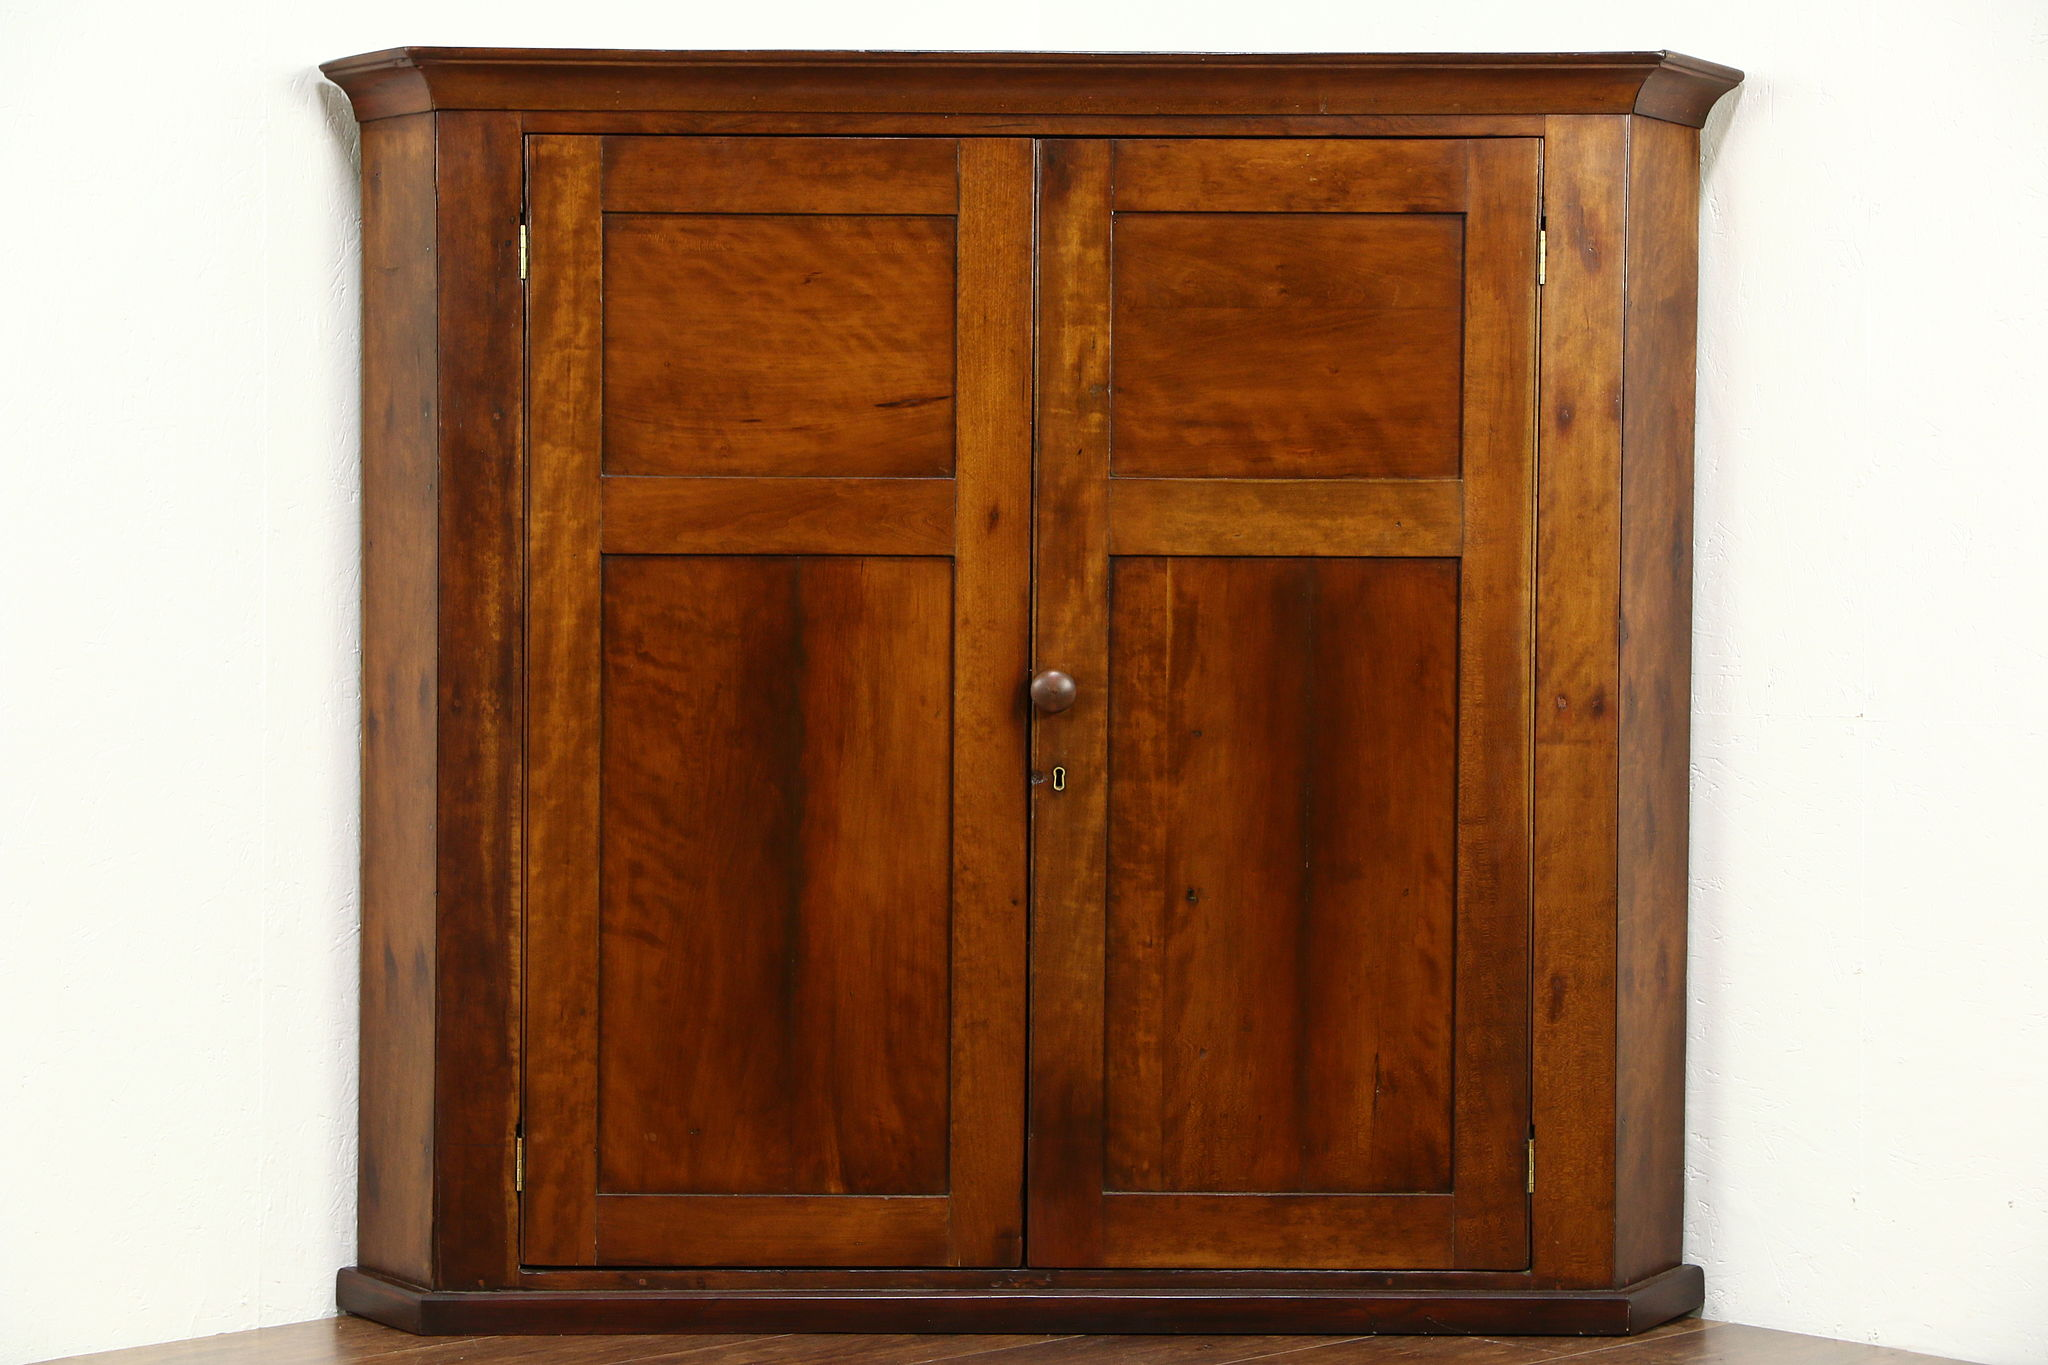 SOLD - Cherry Pennsylvania 19 Antique Corner Cabinet or Hanging ...